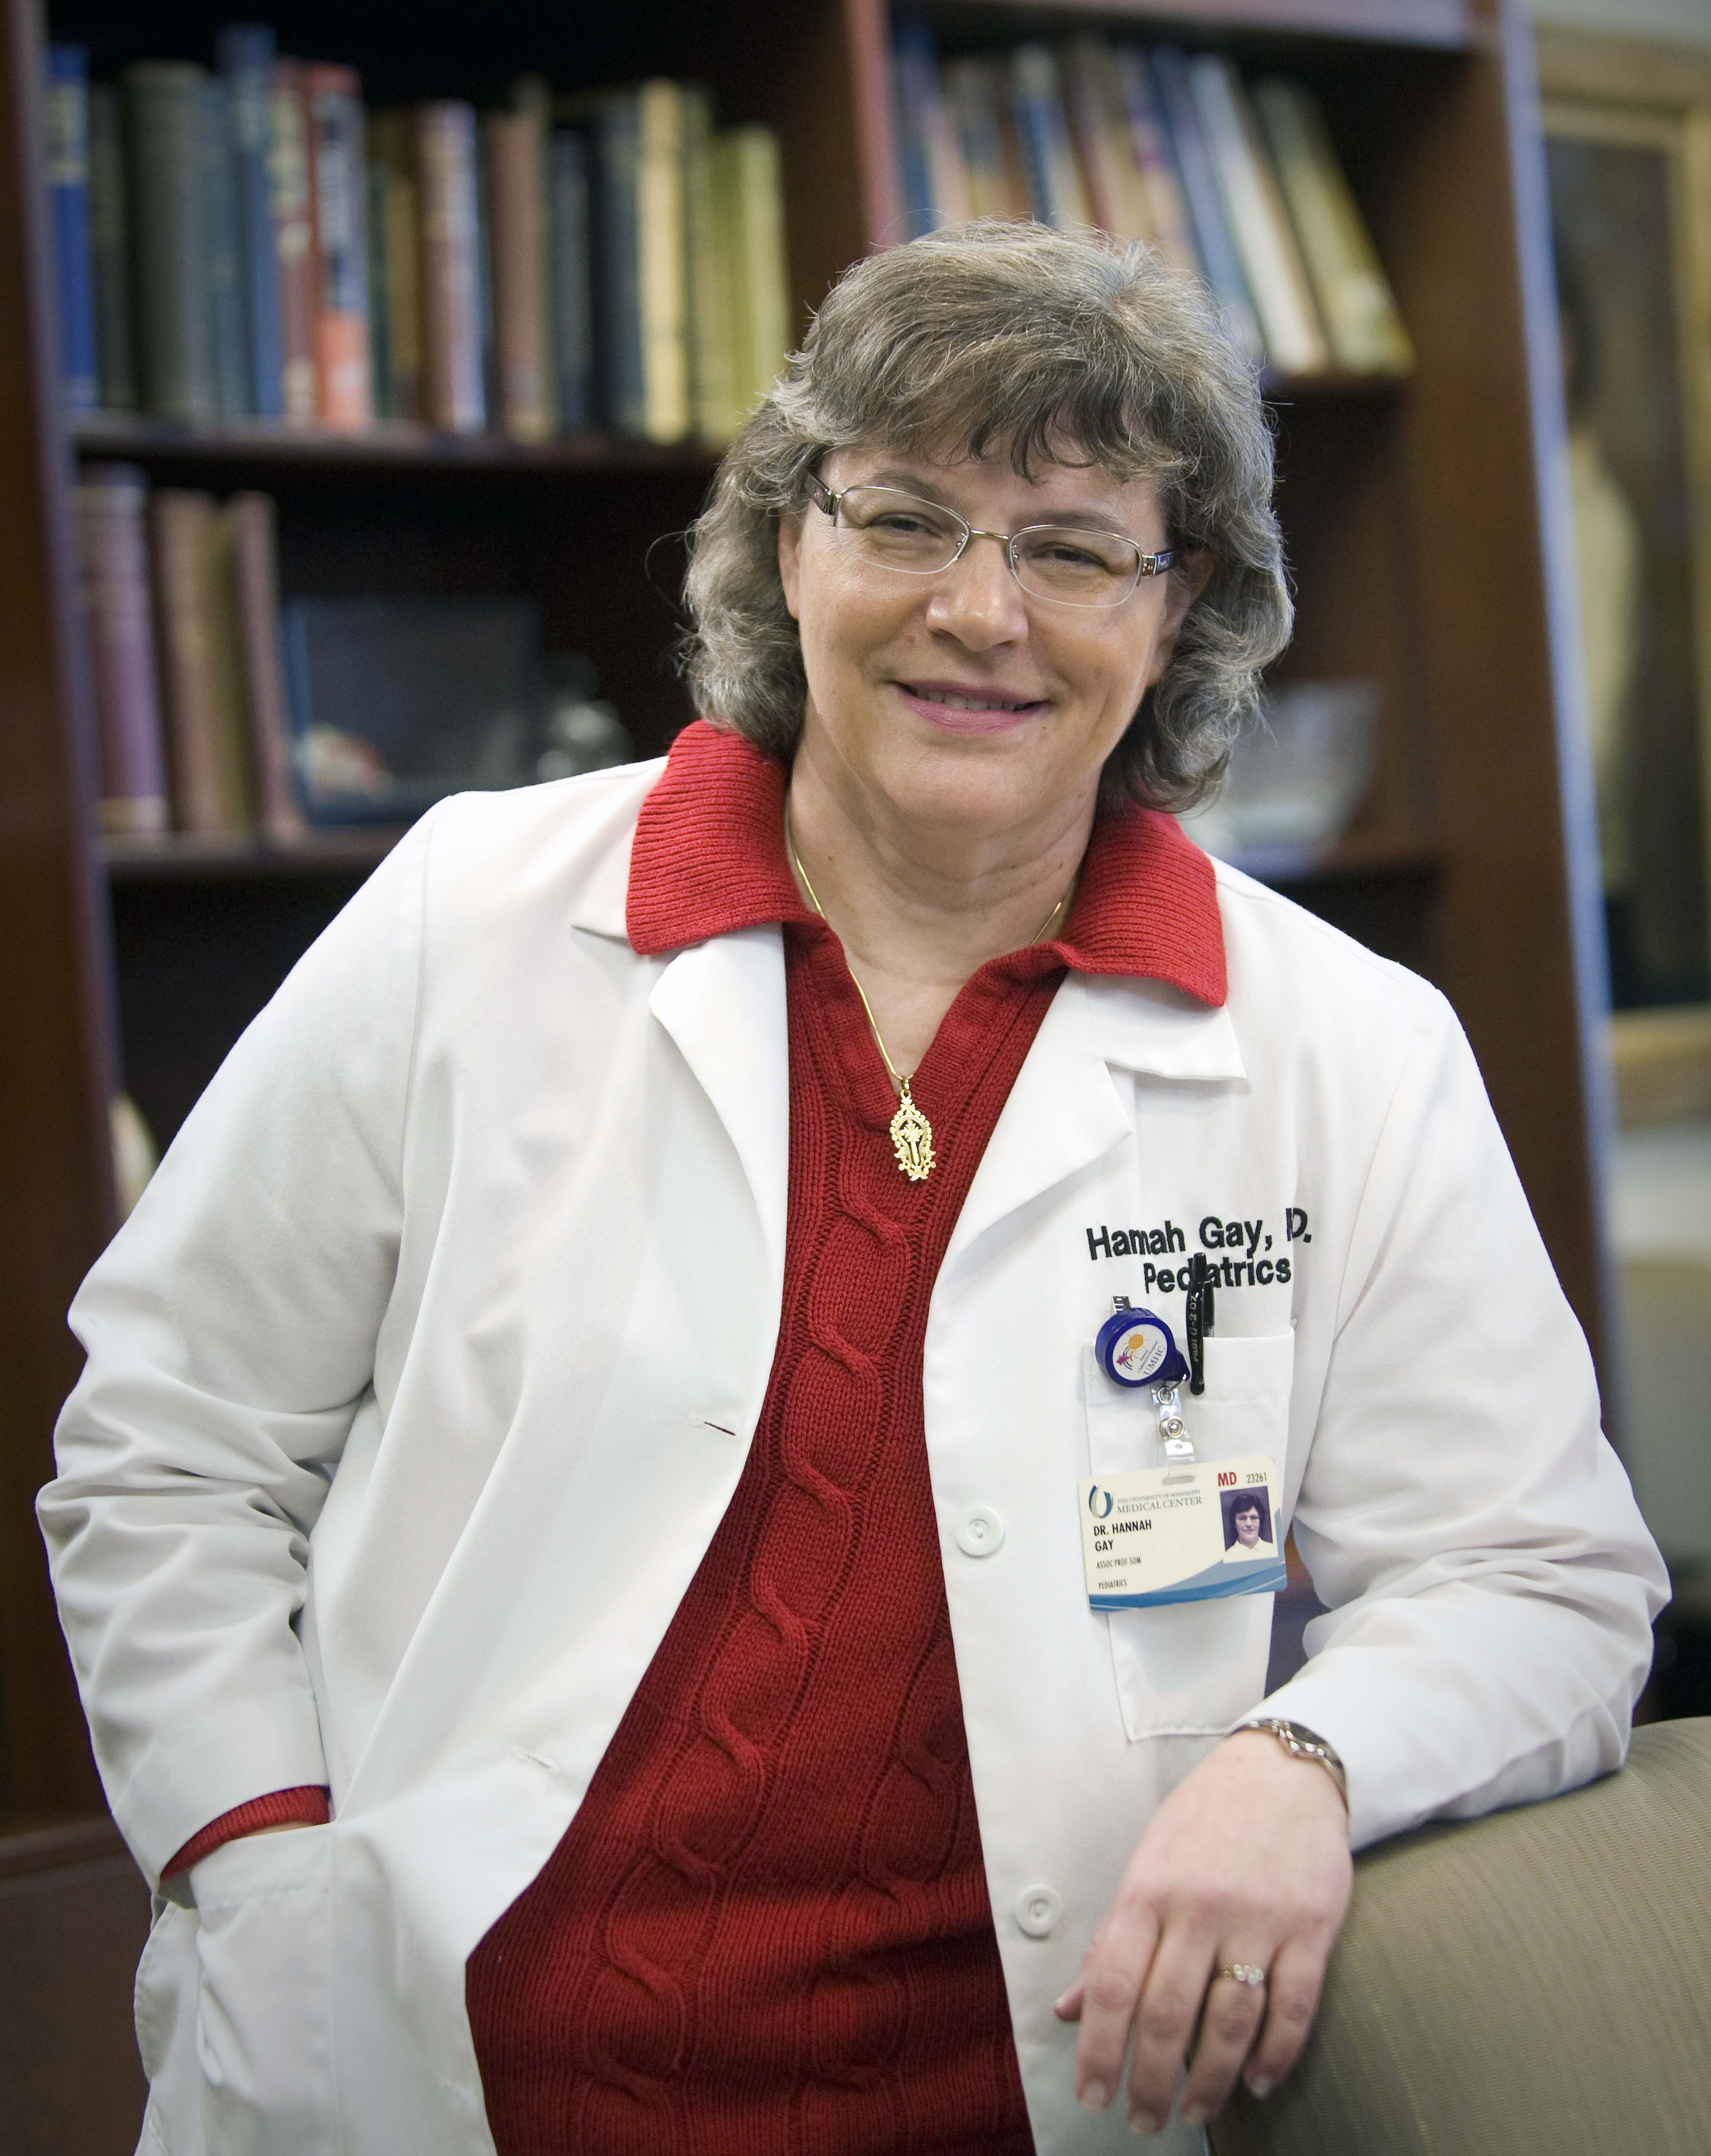 Dr. Hannah Gay, a pediatric HIV specialist at the University of Mississippi on March 3, 2013.